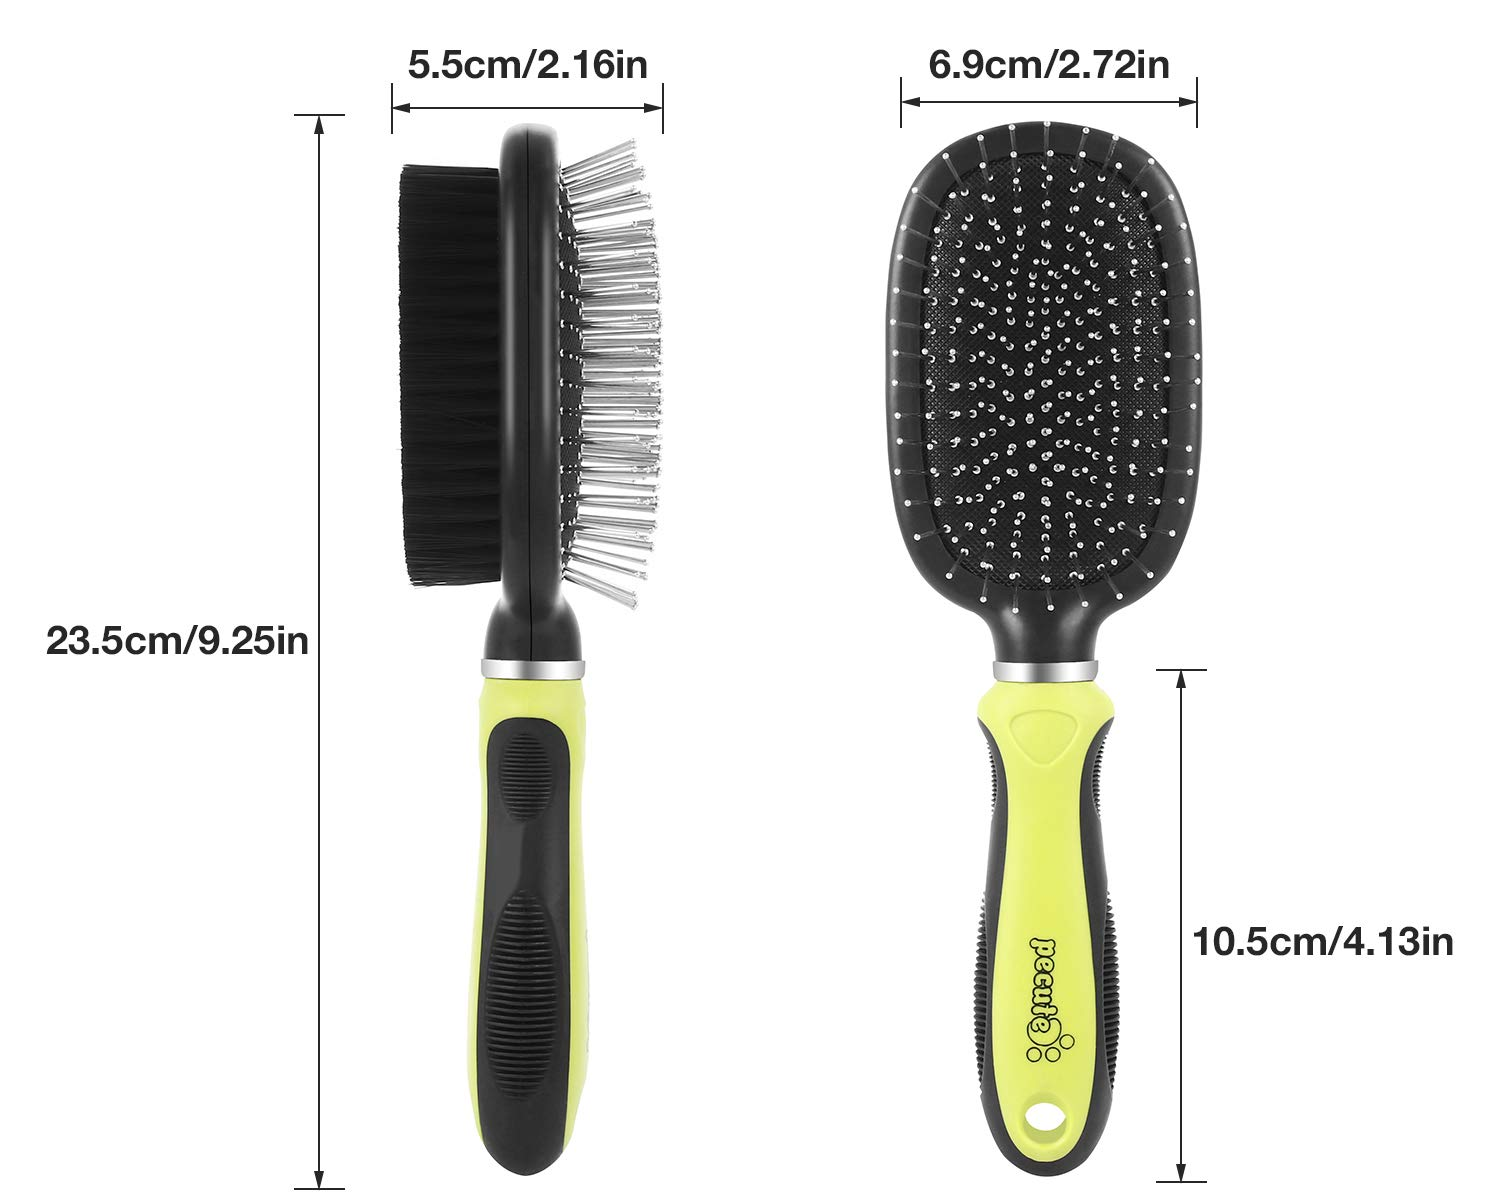 Pecute Double Sided Pet Grooming Brush - 2 in 1 Pin & Bristle Soft Brush - Daily Use to Clean Loose Fur & Dirt - Great for Dogs and Cats With Short Medium Long Hair